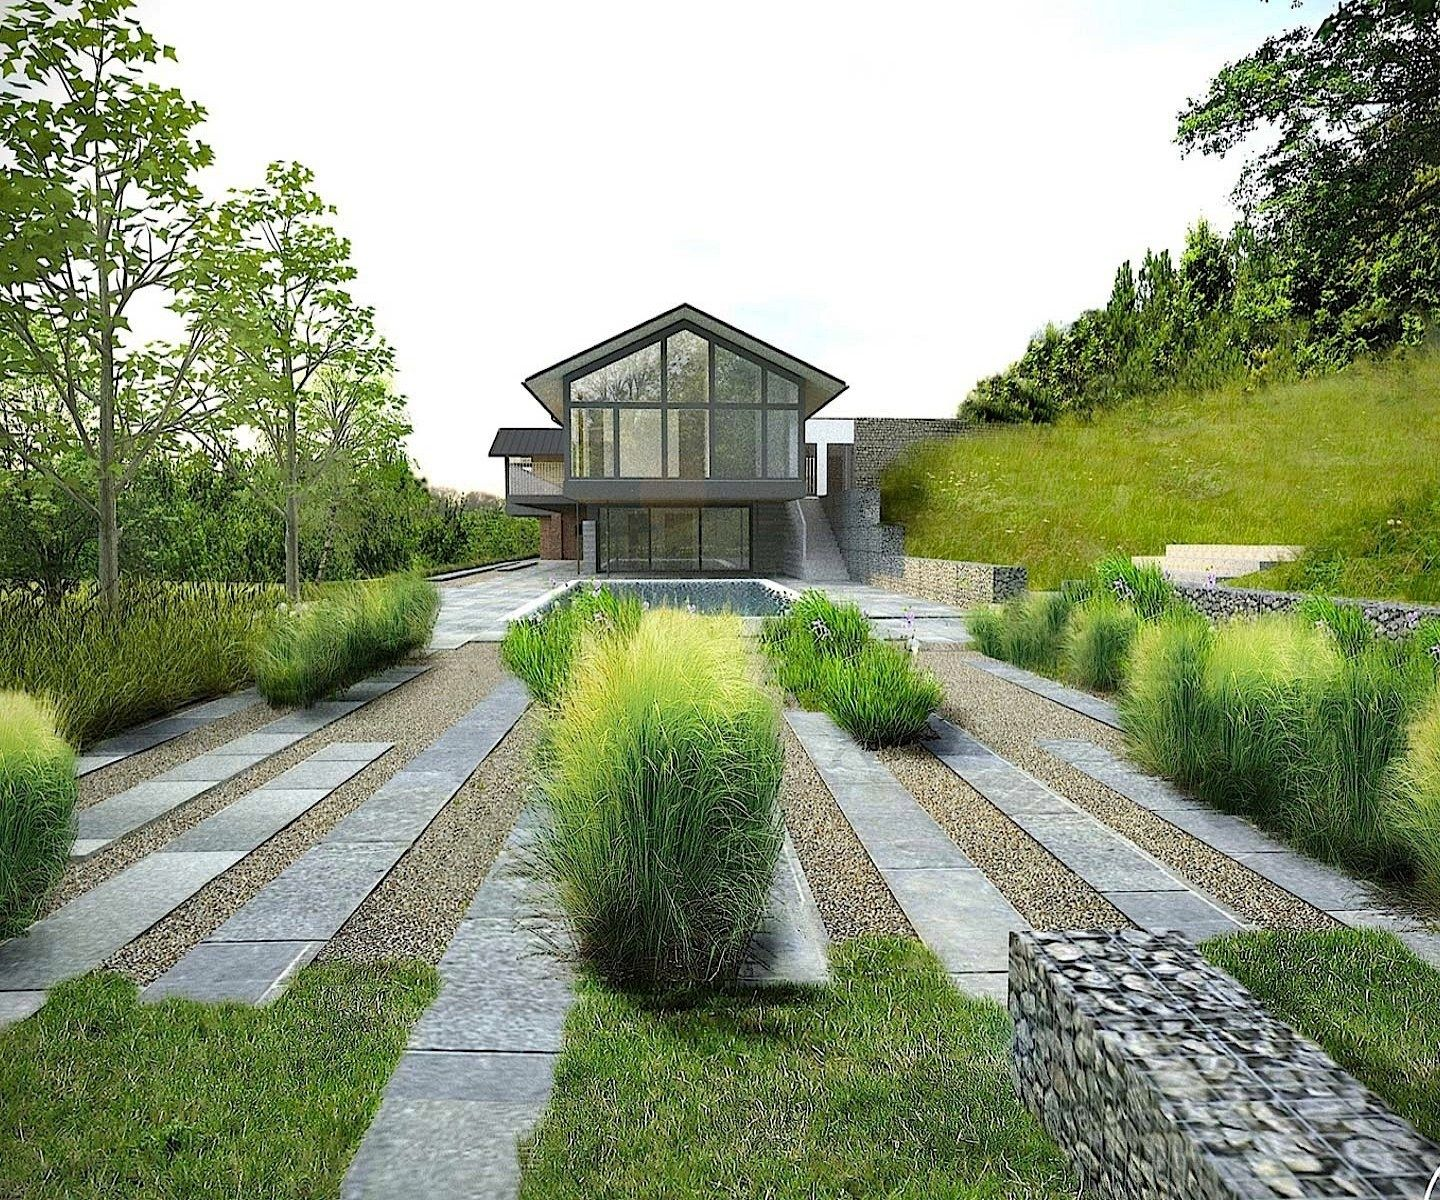 Modern Landscape: Modern Transition From Formality To Wilder In A Strong